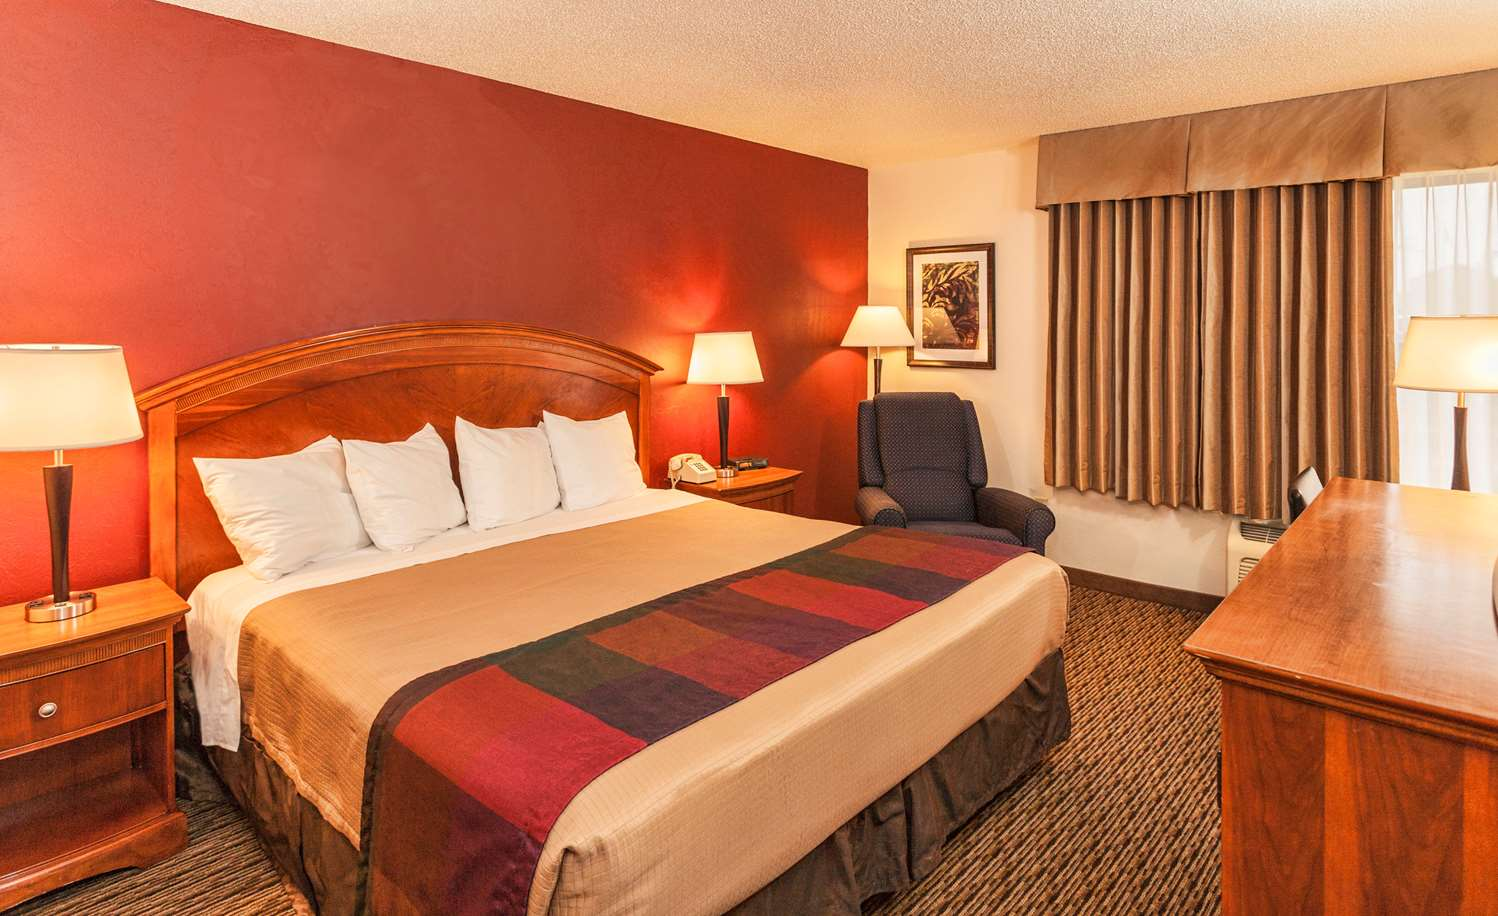 wi in states com suites book united z comfort hayward comforter hotels america of